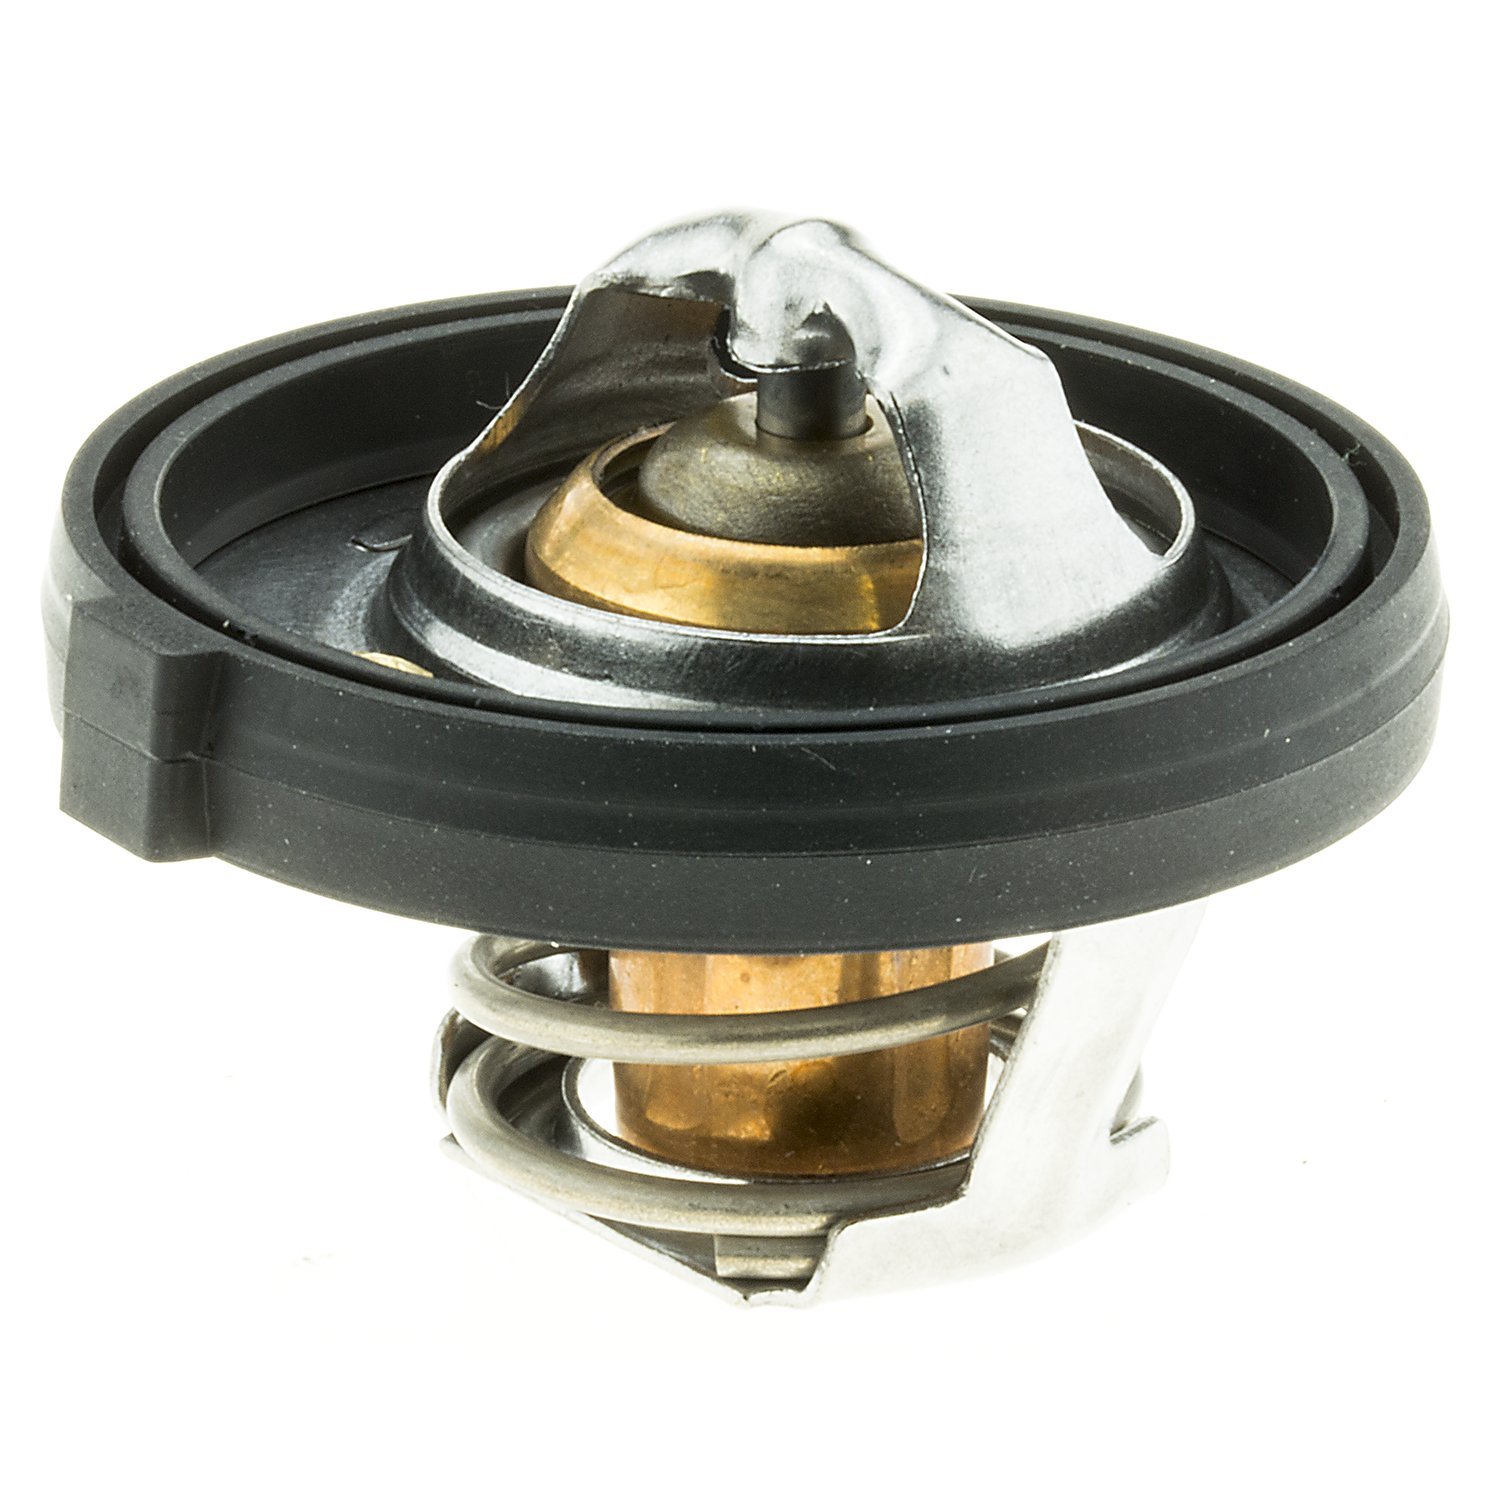 hight resolution of motorad 340 195 engine coolant thermostat for chrysler cirrus concorde